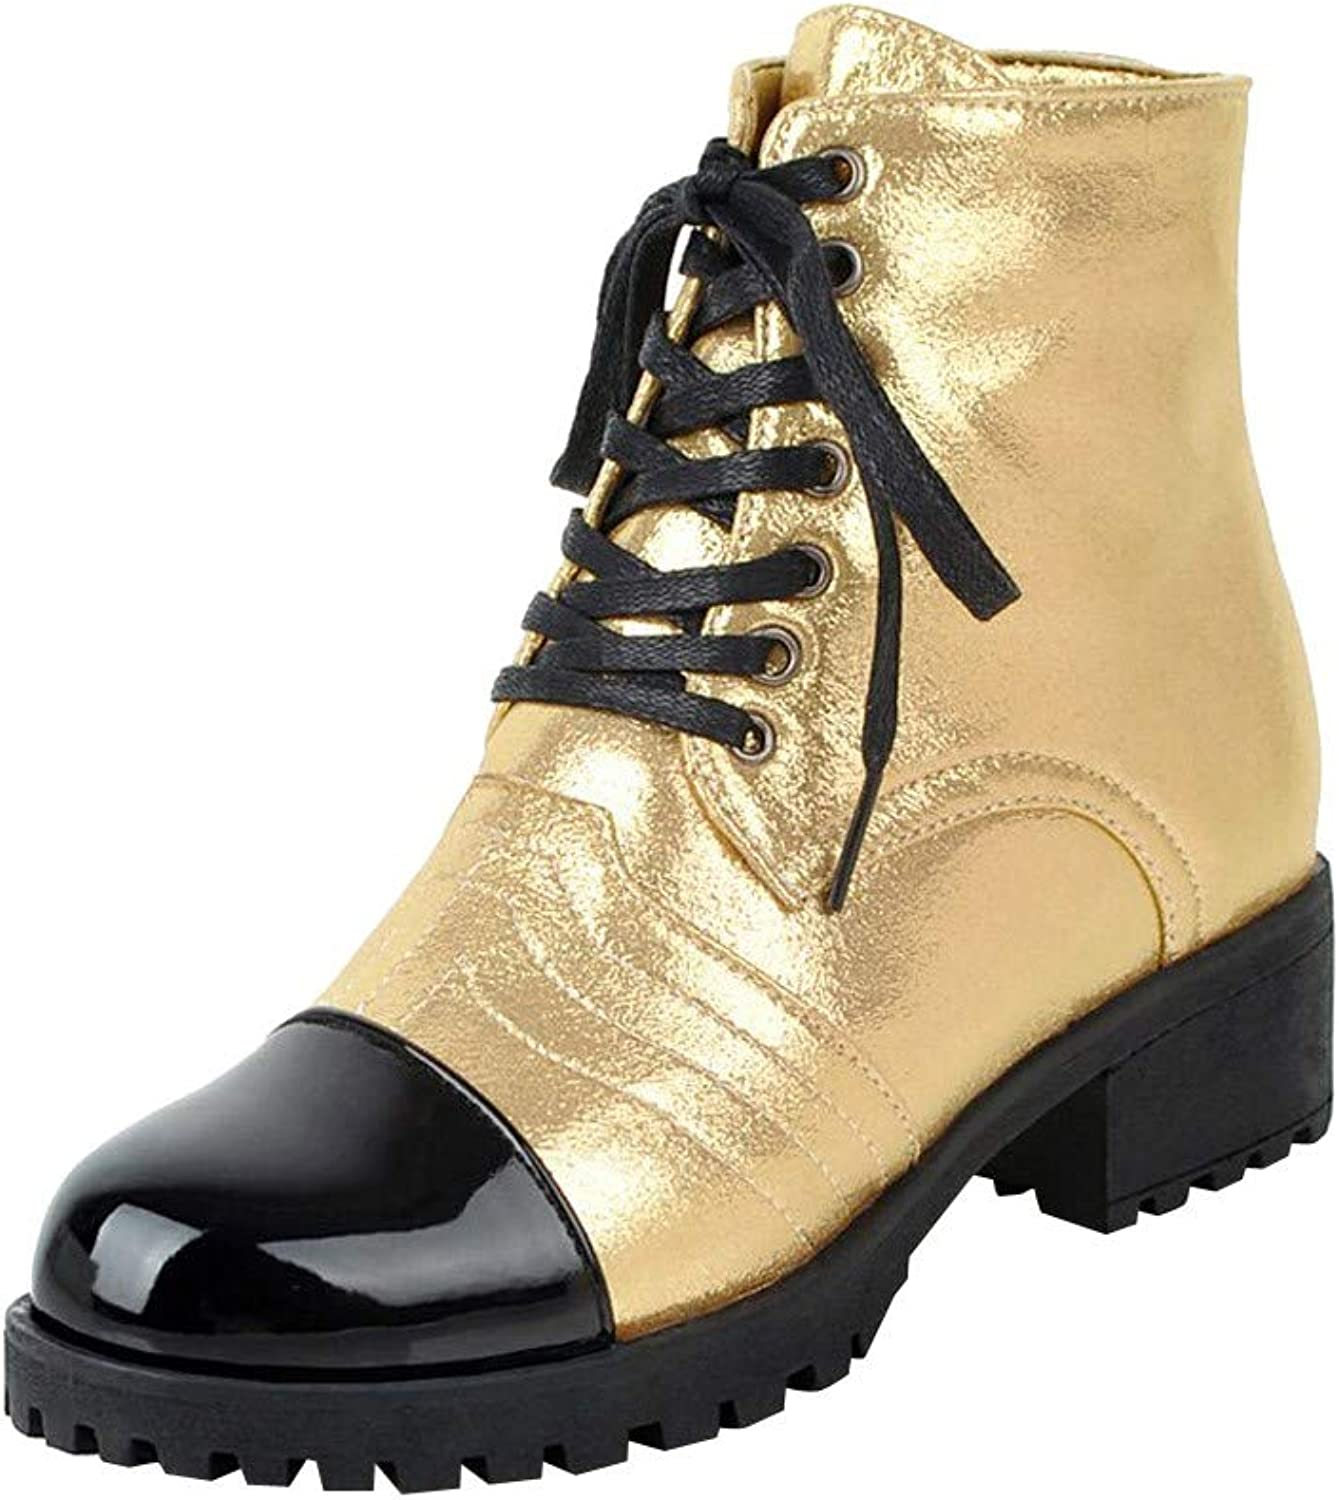 Womens Bright Leather Ankle Boots, Witspace Ladies Elegant Chelsea Martin Boots Vintage Lace Up Low Block Heel shoes